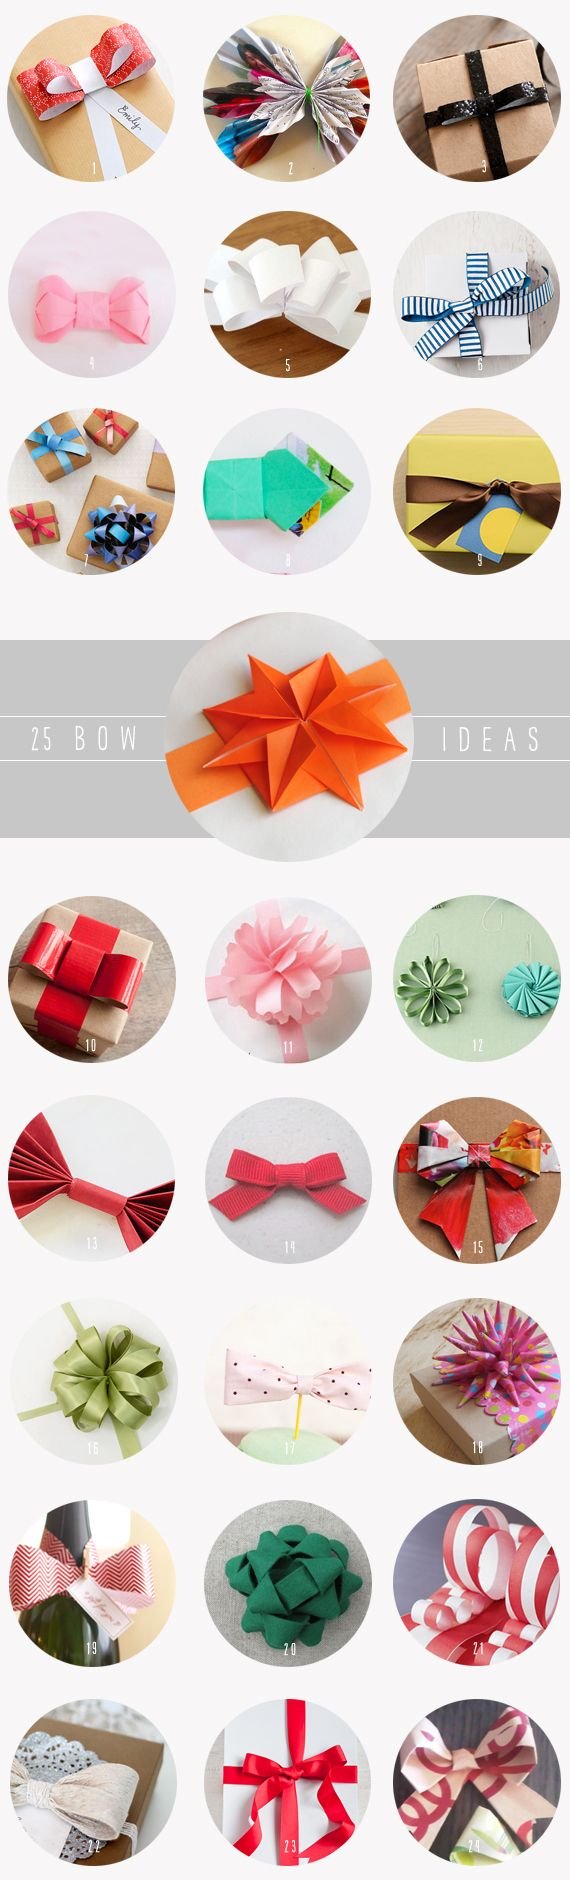 25 Handmade Bow Tutorials by asubtlerevelry #DIY #Crafts #Bows